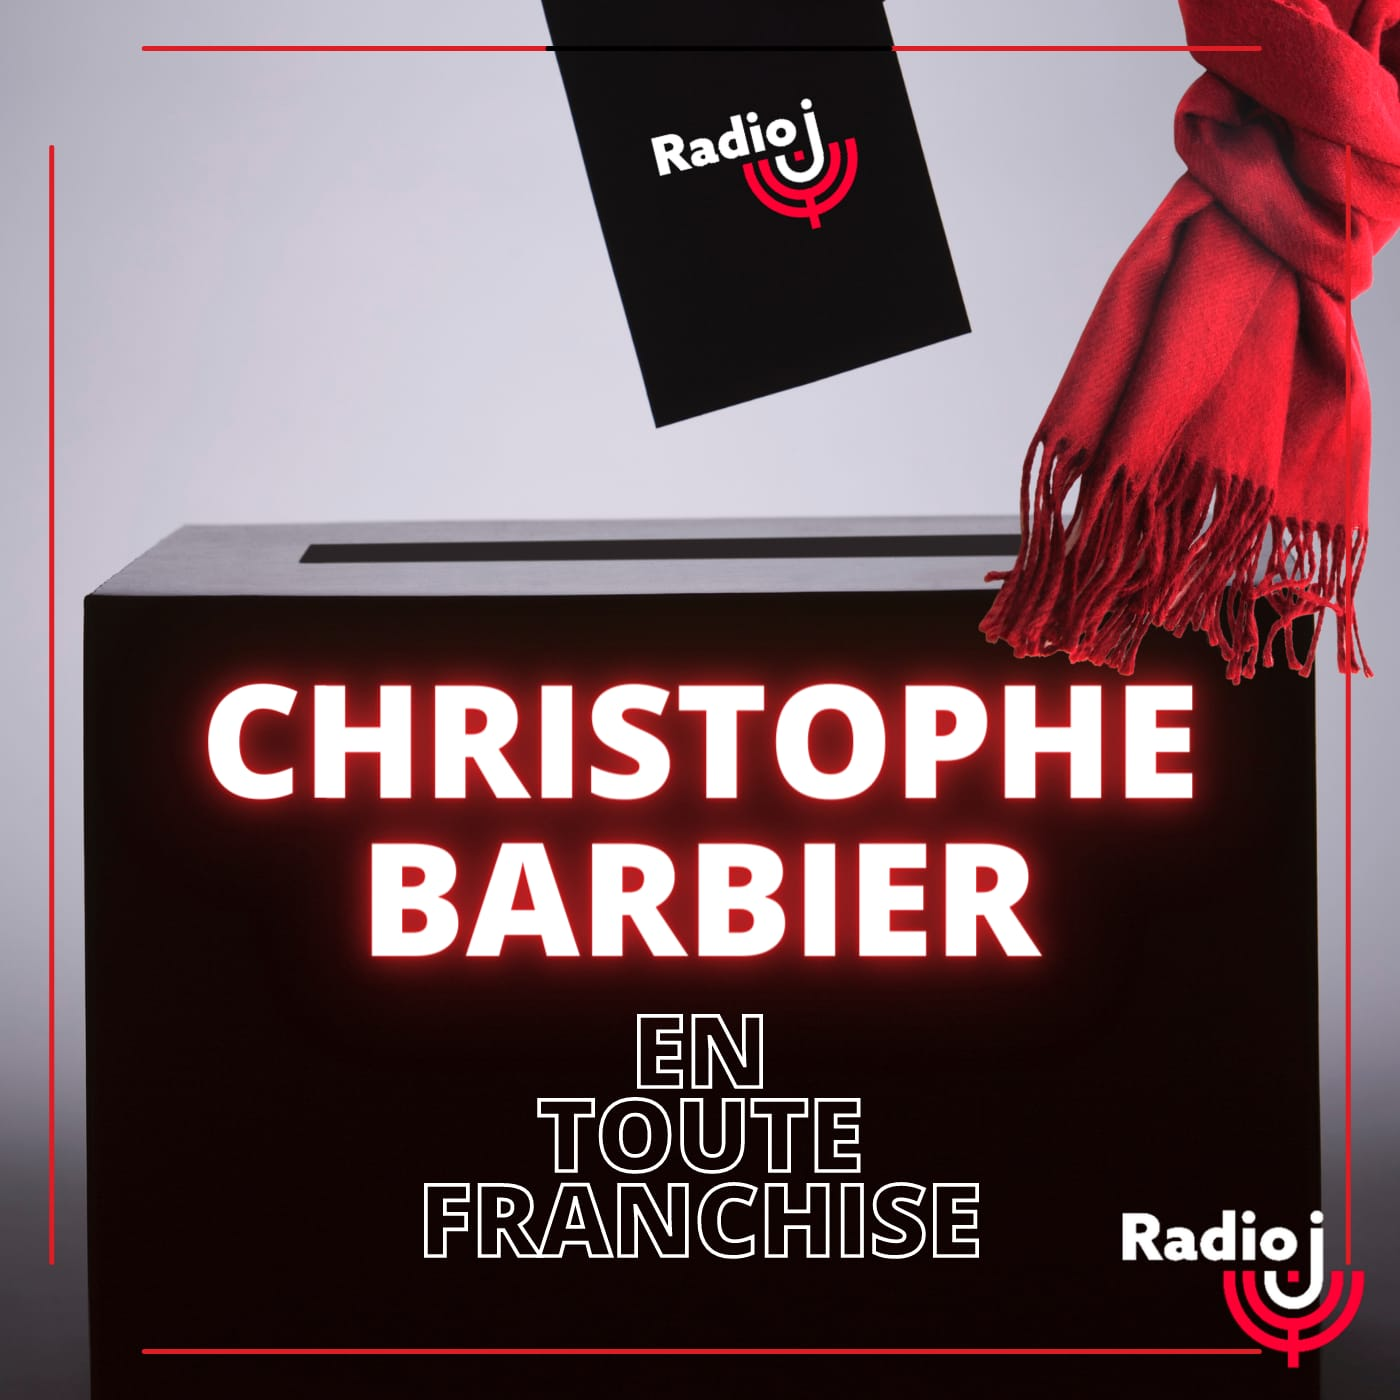 En toute franchise Christophe Barbier